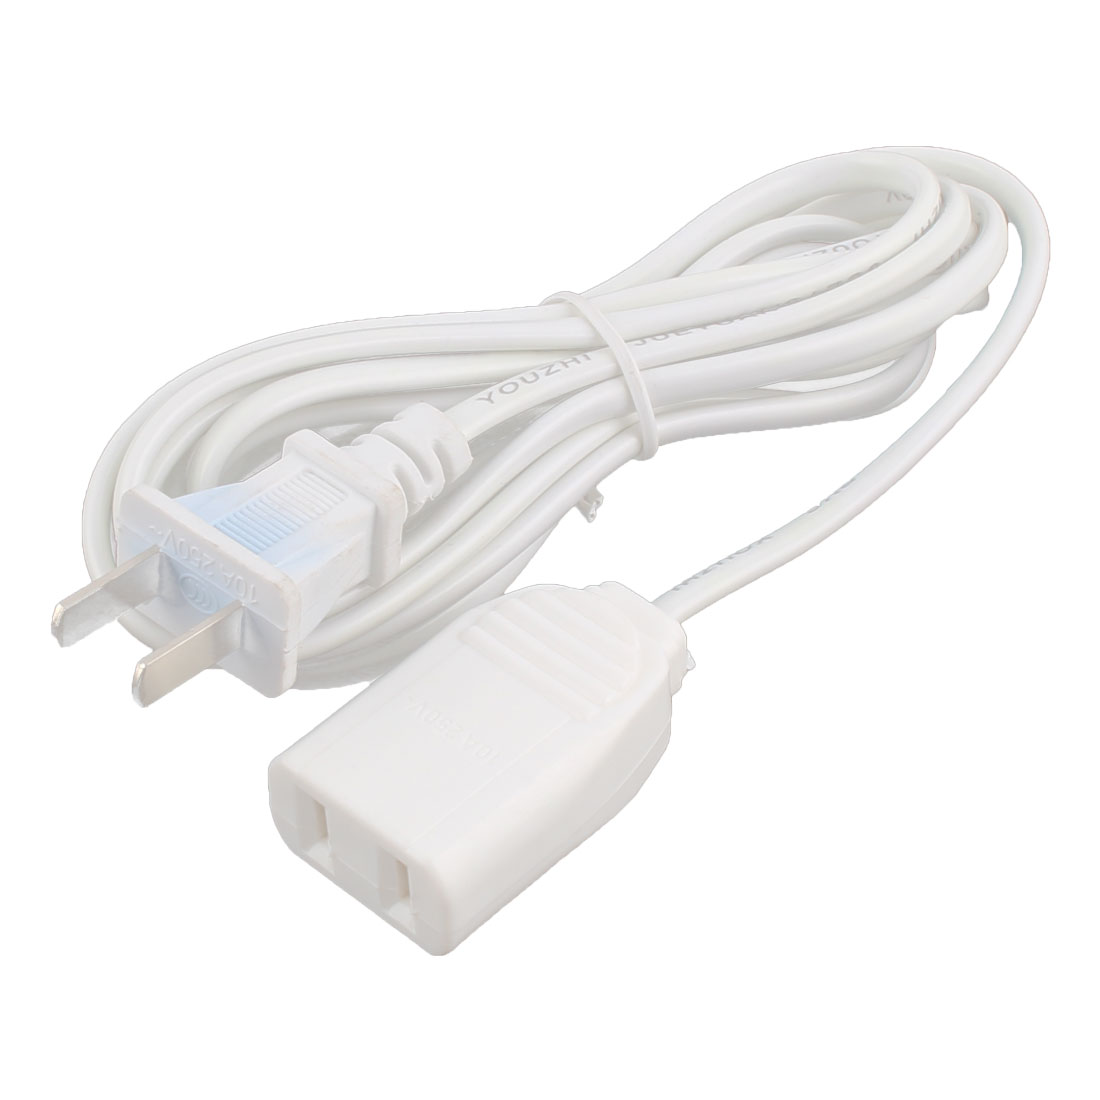 US Plug 2 Prong Power Suppy AC Adapter Extension Charger Charging Cable Cord White 3 Meters